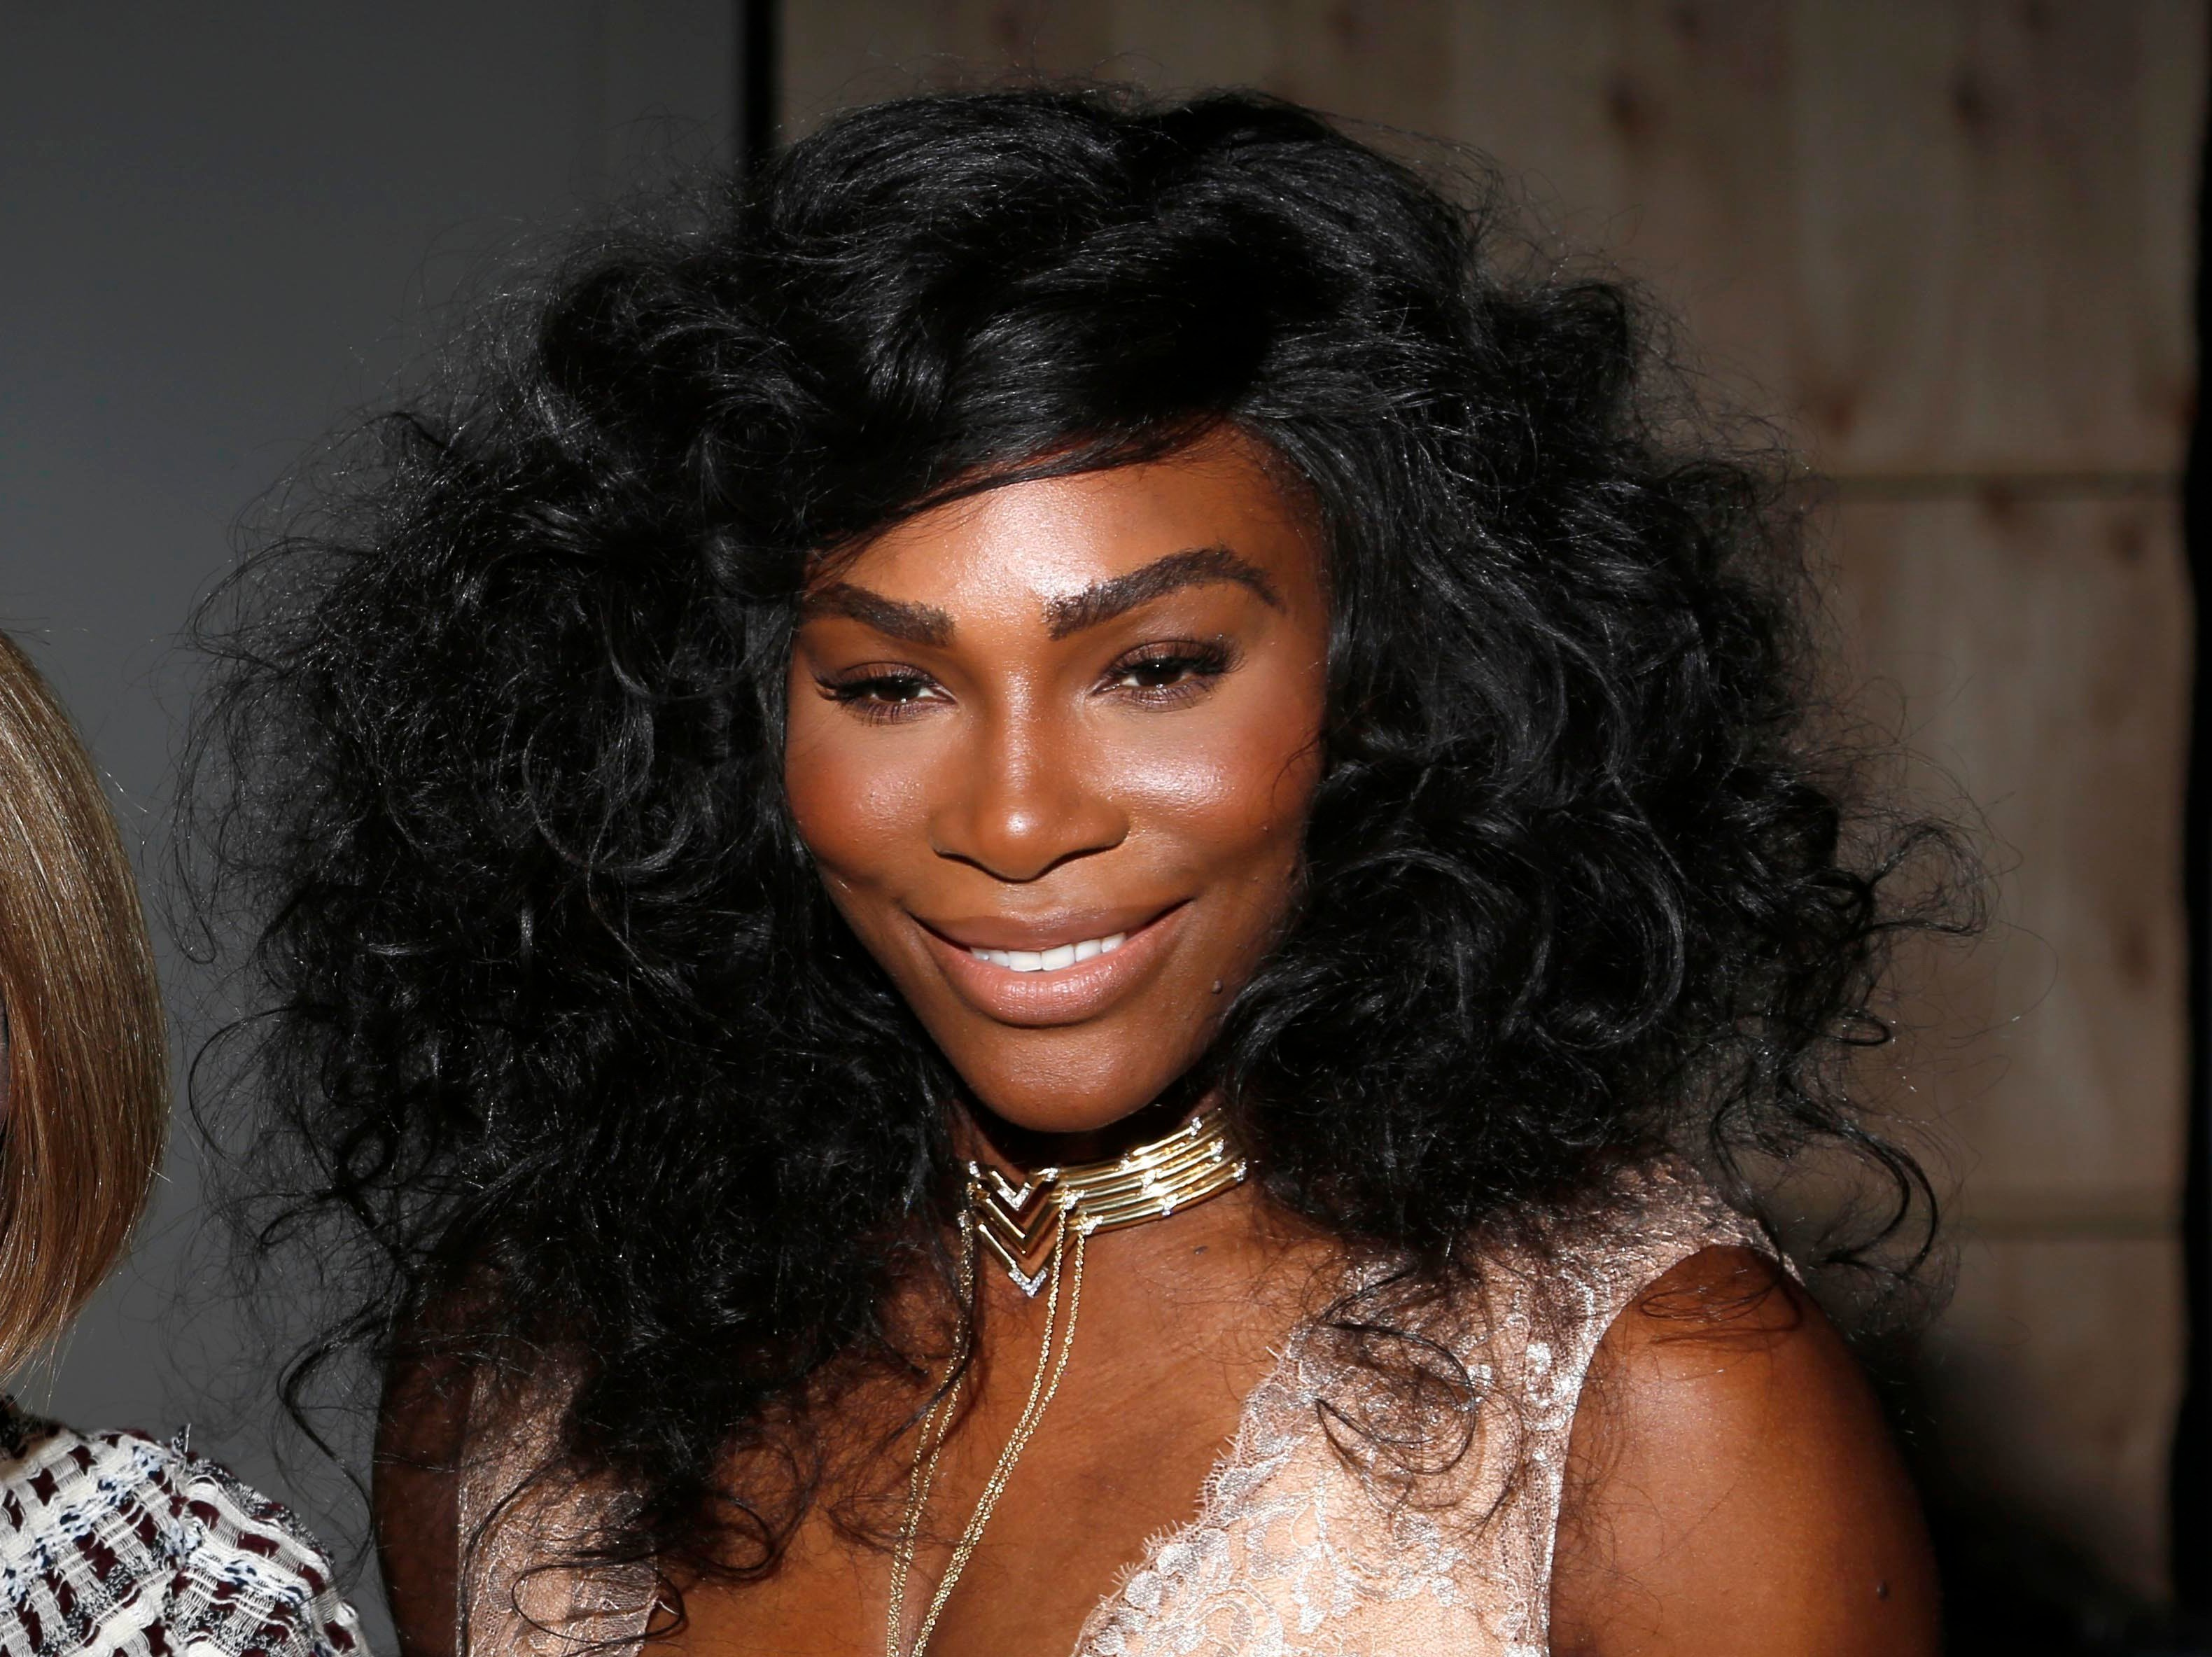 FILE - In this Sept. 12, 2016 file photo, Serena Williams poses for a picture before the Serena Williams Signature Statement Spring 2017 collection is modeled during Fashion Week in New York.